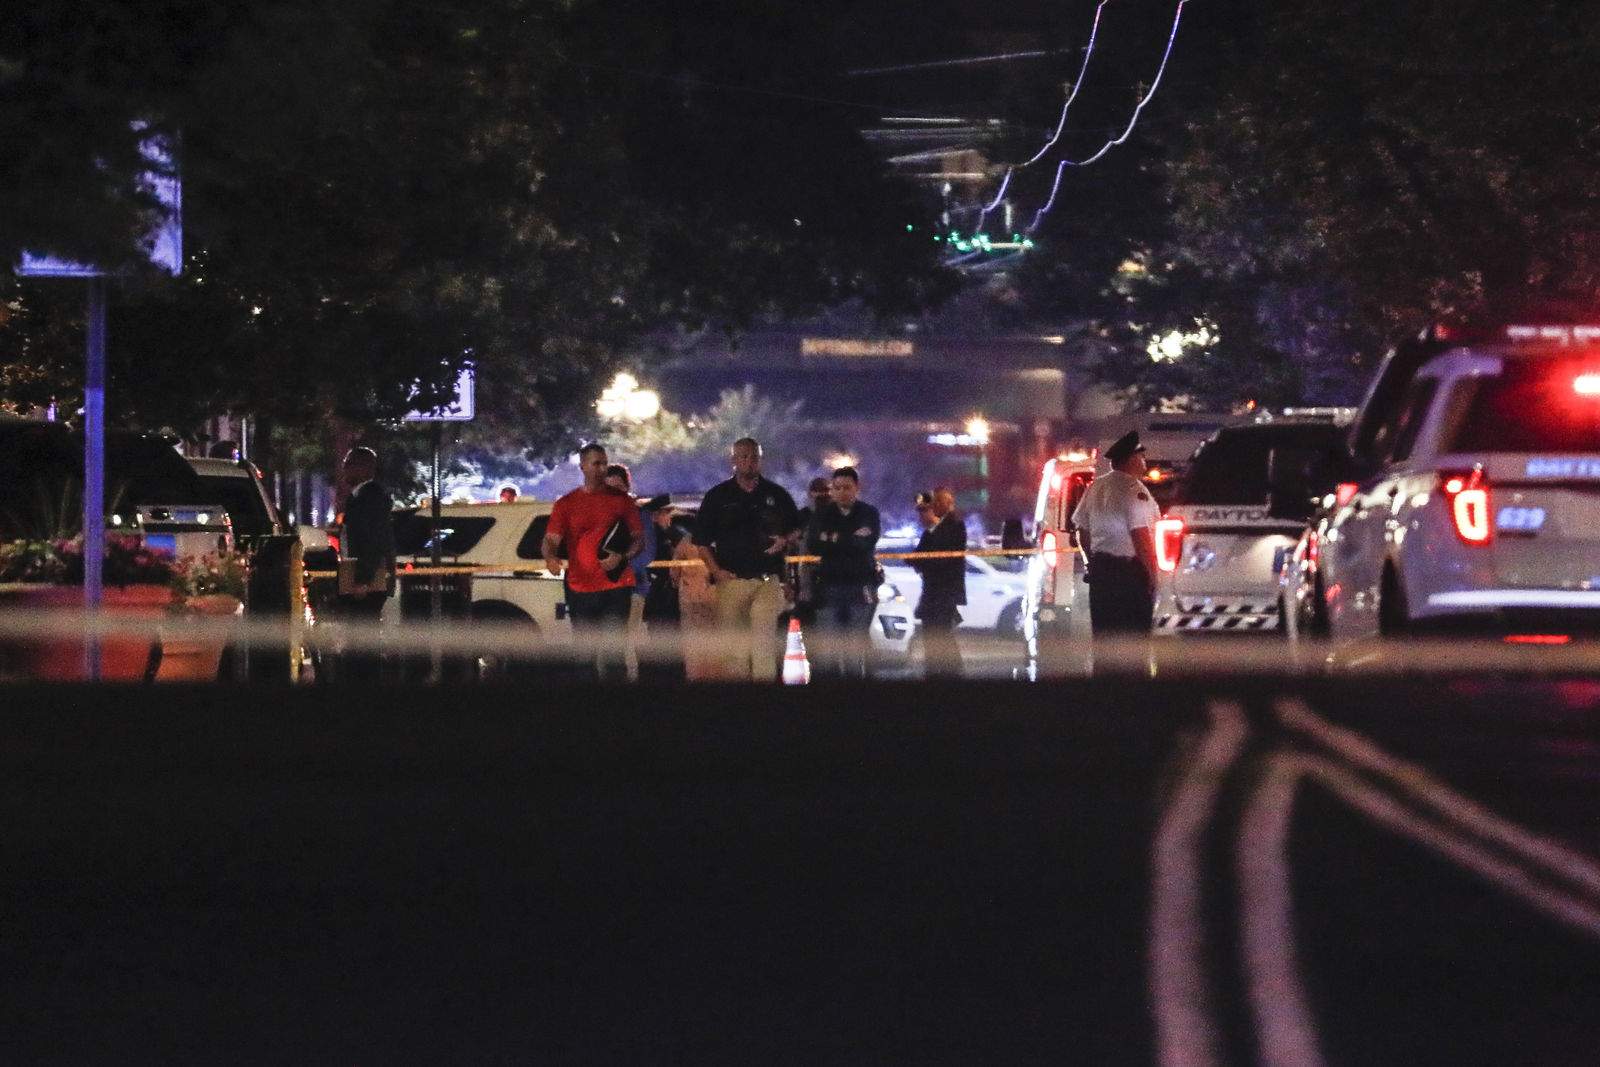 Authorities work the scene of a mass shooting, Sunday, Aug. 4, 2019, in Dayton, Ohio. A several people in Ohio have been killed in the second mass shooting in the U.S. in less than 24 hours, and the suspected shooter is also deceased, police said. (AP Photo/John Minchillo)